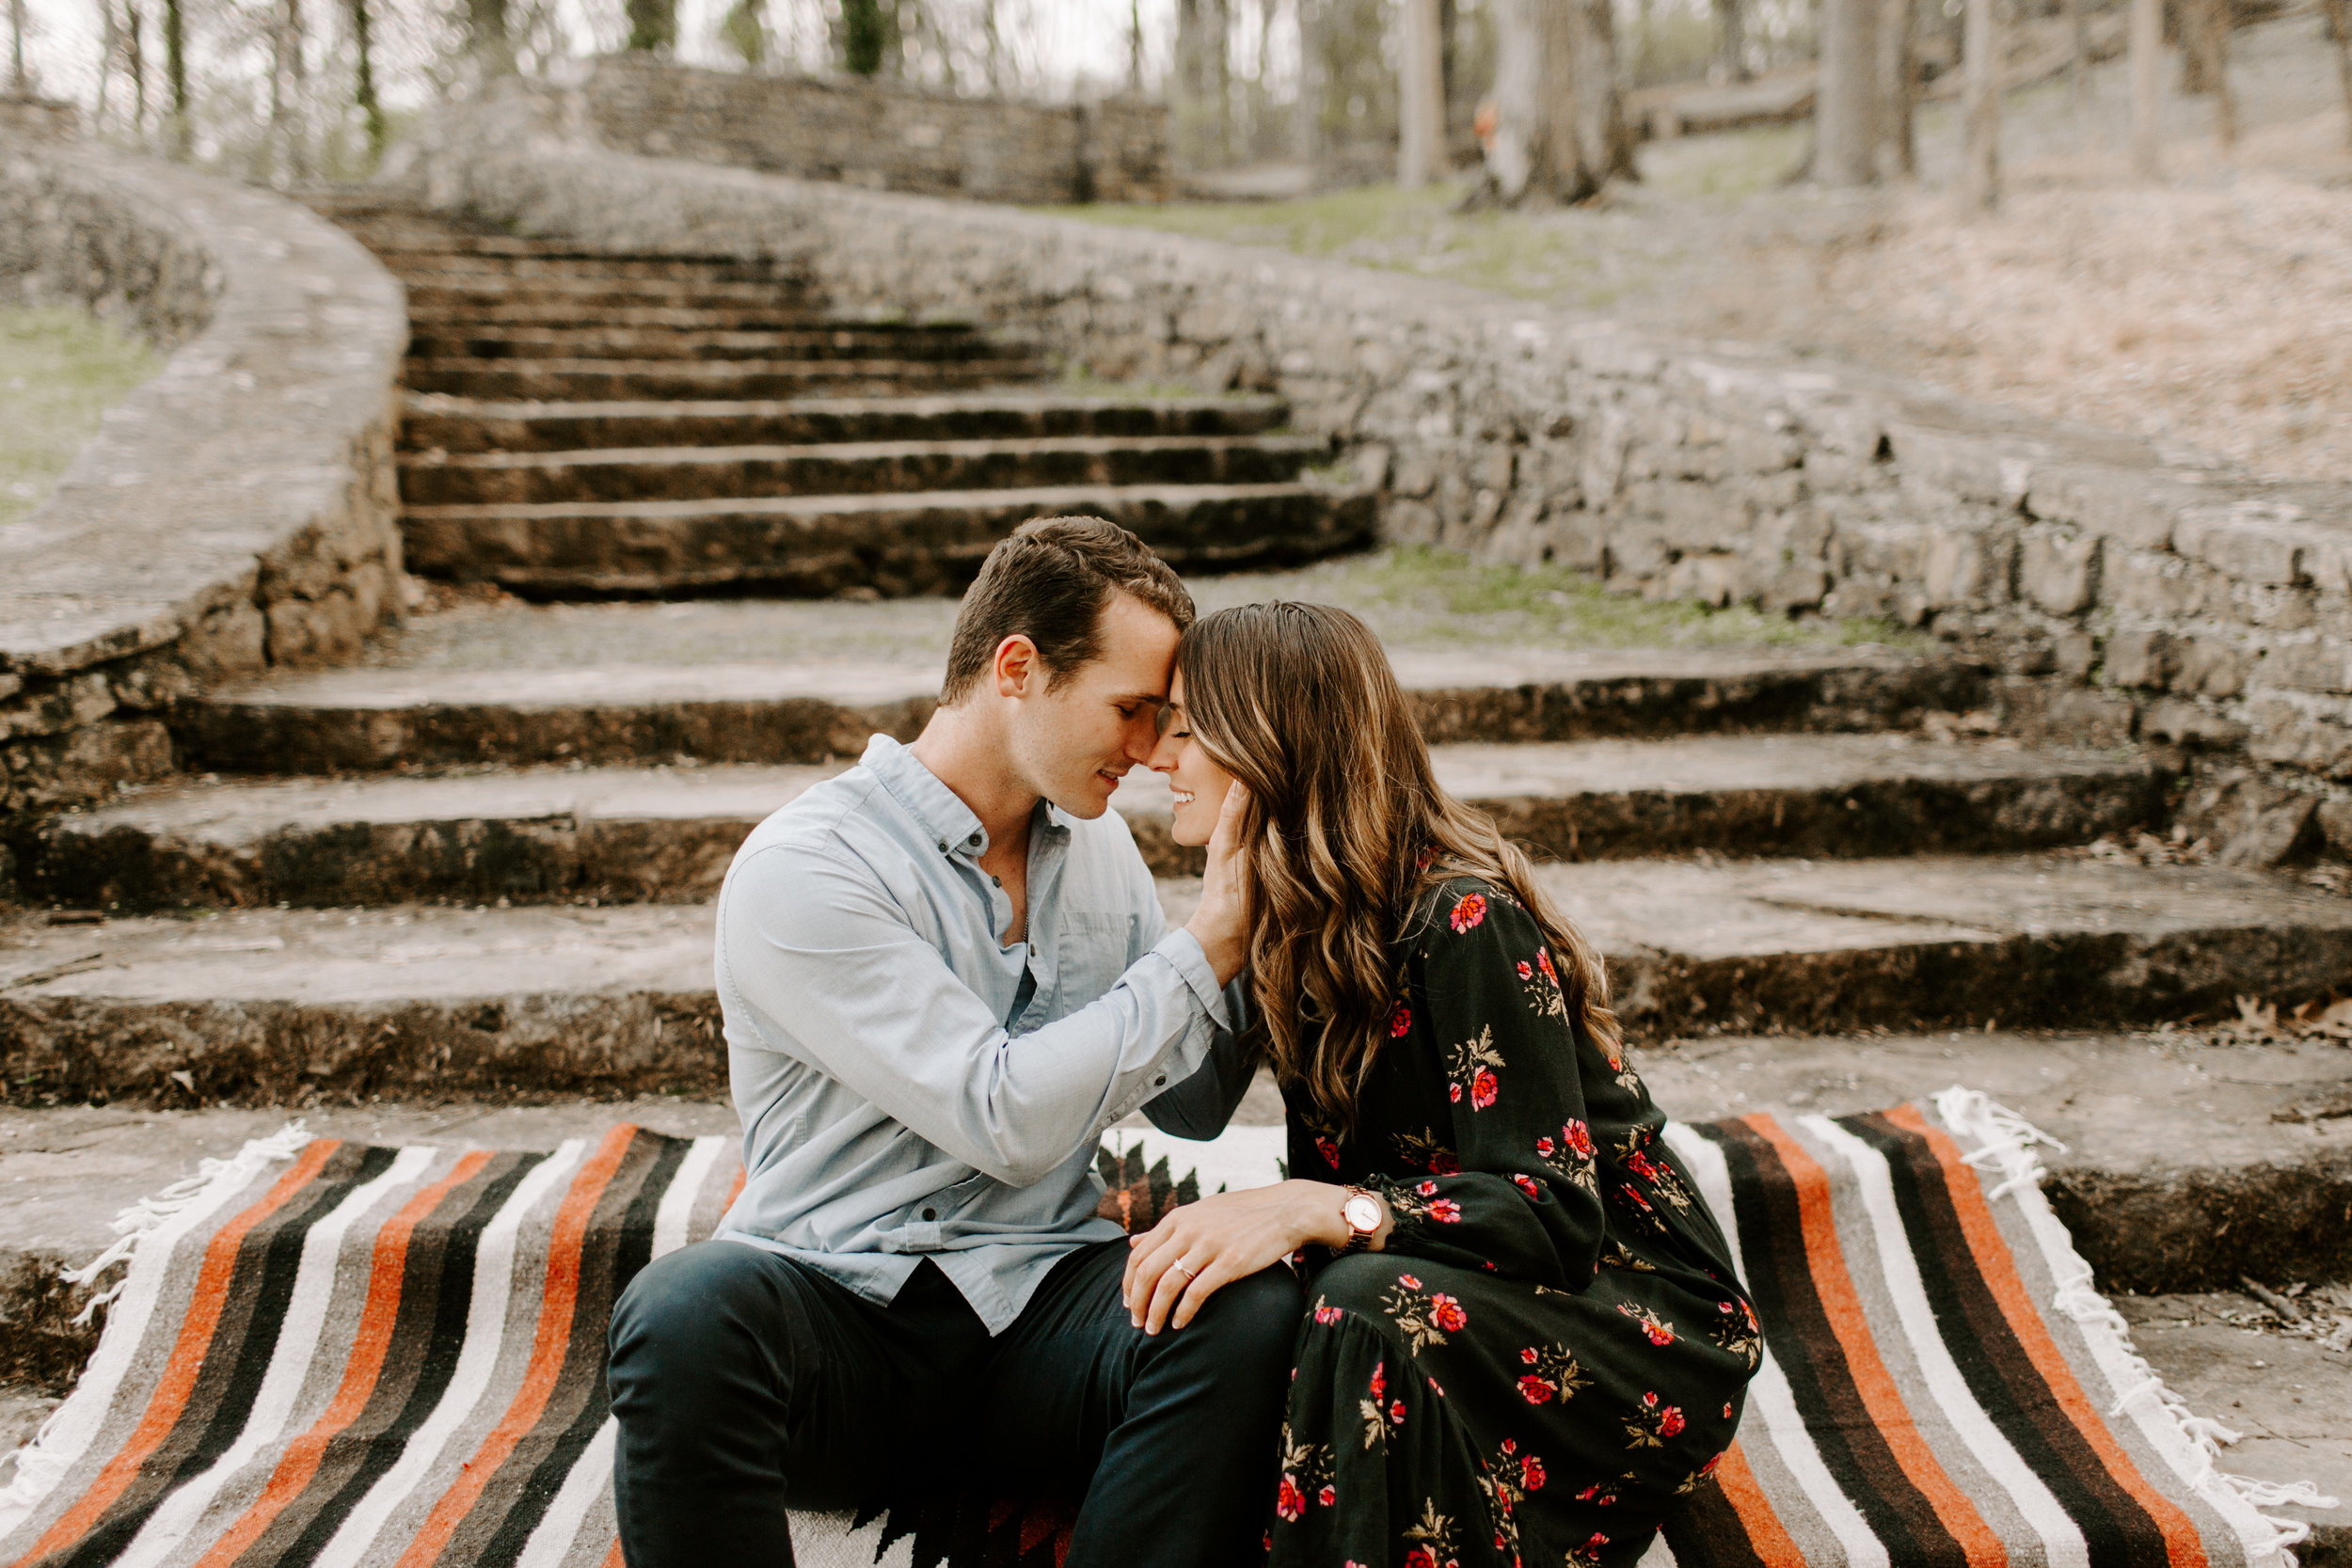 2018.03.16_kayleematt_nashville_engagement_elissavossphotography_previews_12.jpg